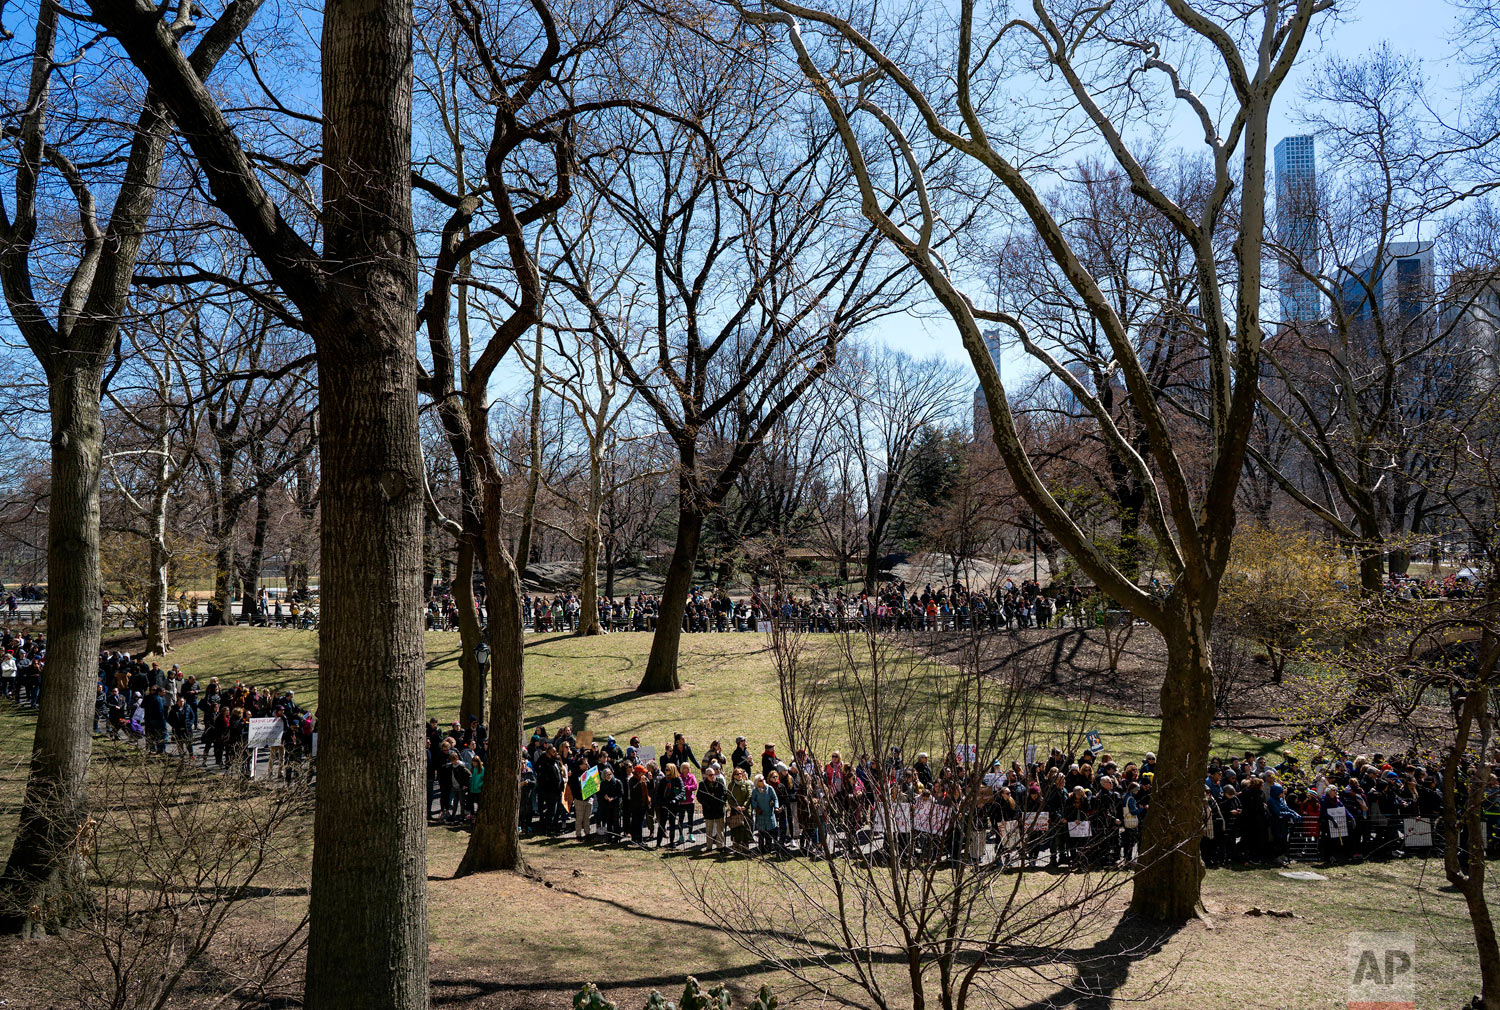 An overflow crowd gathers in Central Park as people take part in a march and rally against gun violence along nearby Central Park West Saturday, March 24, 2018, in New York. Students and activists across the country planned events n conjunction with a Washington march spearheaded by teens from Marjory Stoneman Douglas High School in Parkland, Fla., where 17 people were killed in February.  (AP Photo/Craig Ruttle)